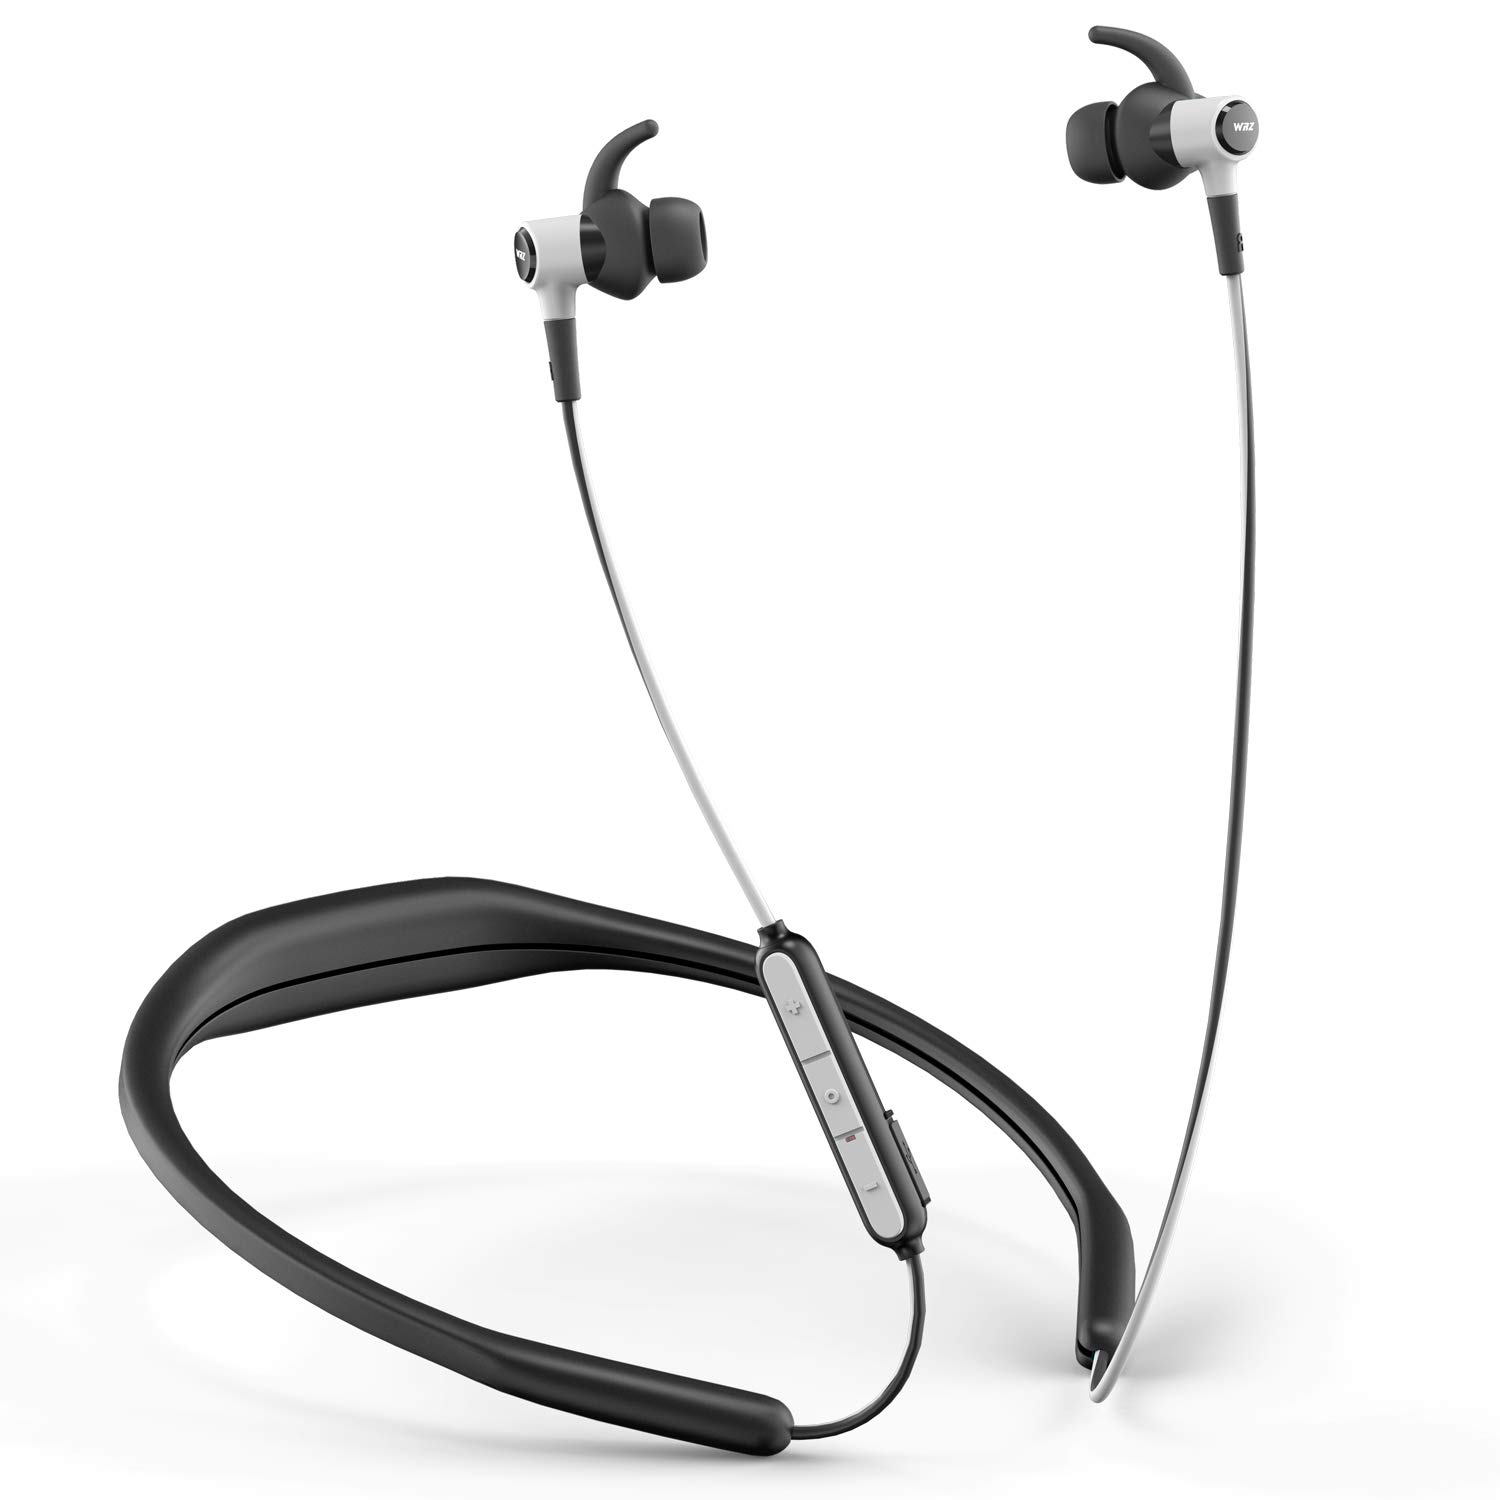 WRZ N5 Wireless Headphones Bluetooth with Microphone and Volume Control, Running Earbuds Sports Stereo Waterproof Detachable Neckband for Cellphone iOS Android Smartphone Laptop Tablet (Black White)